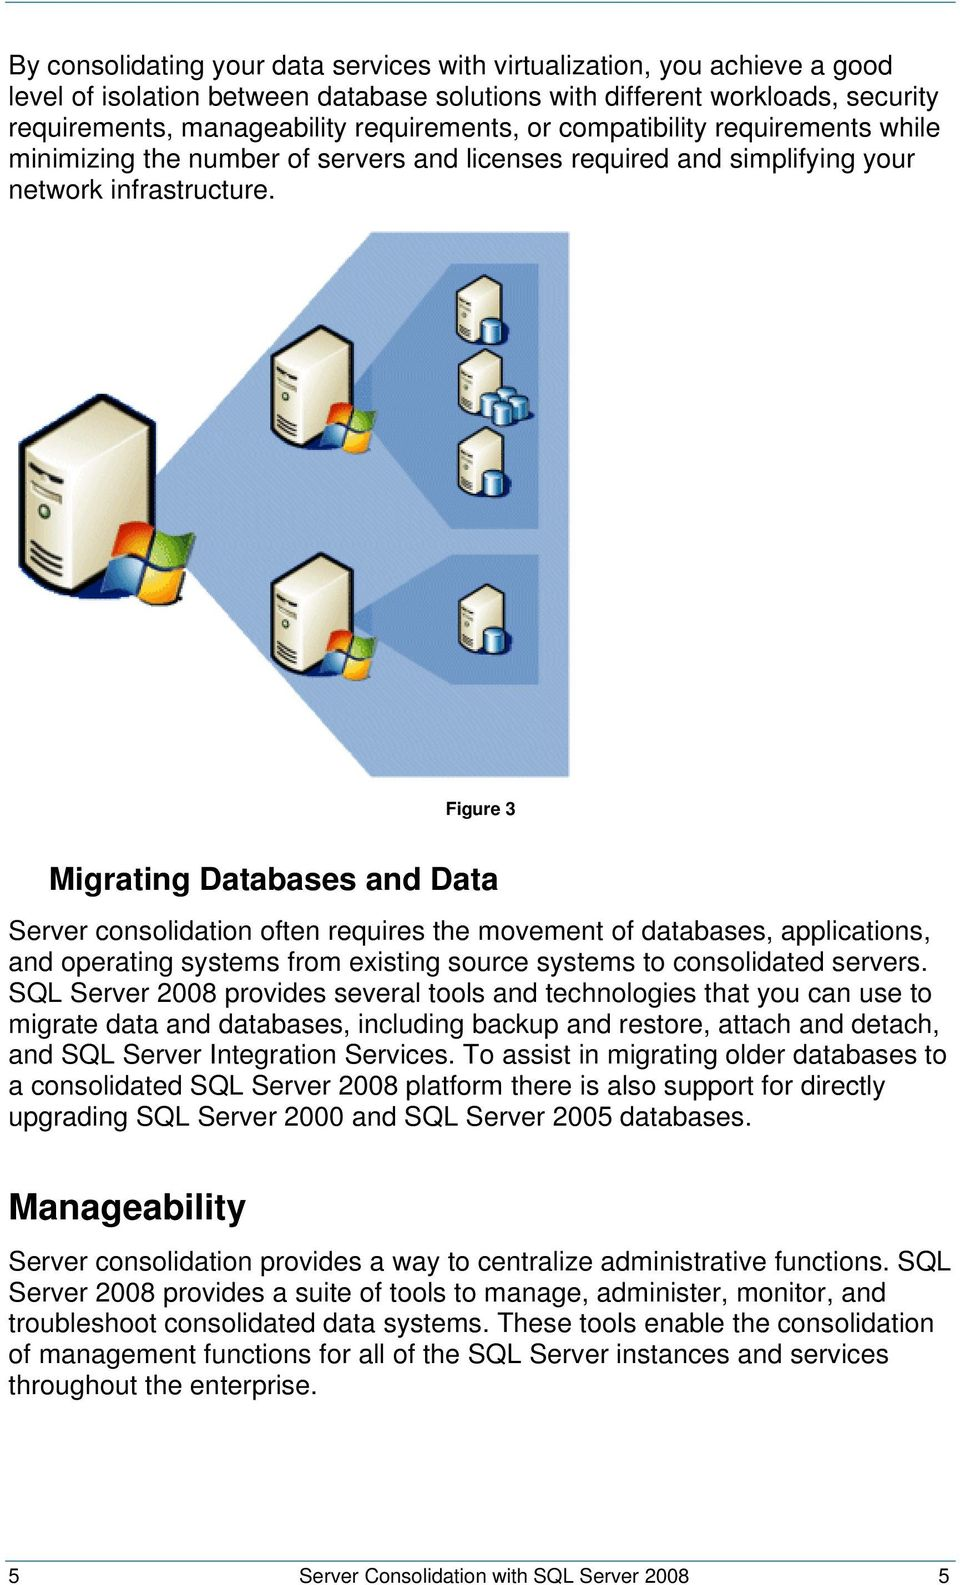 Figure 3 Migrating Databases and Data Server consolidation often requires the movement of databases, applications, and operating systems from existing source systems to consolidated servers.